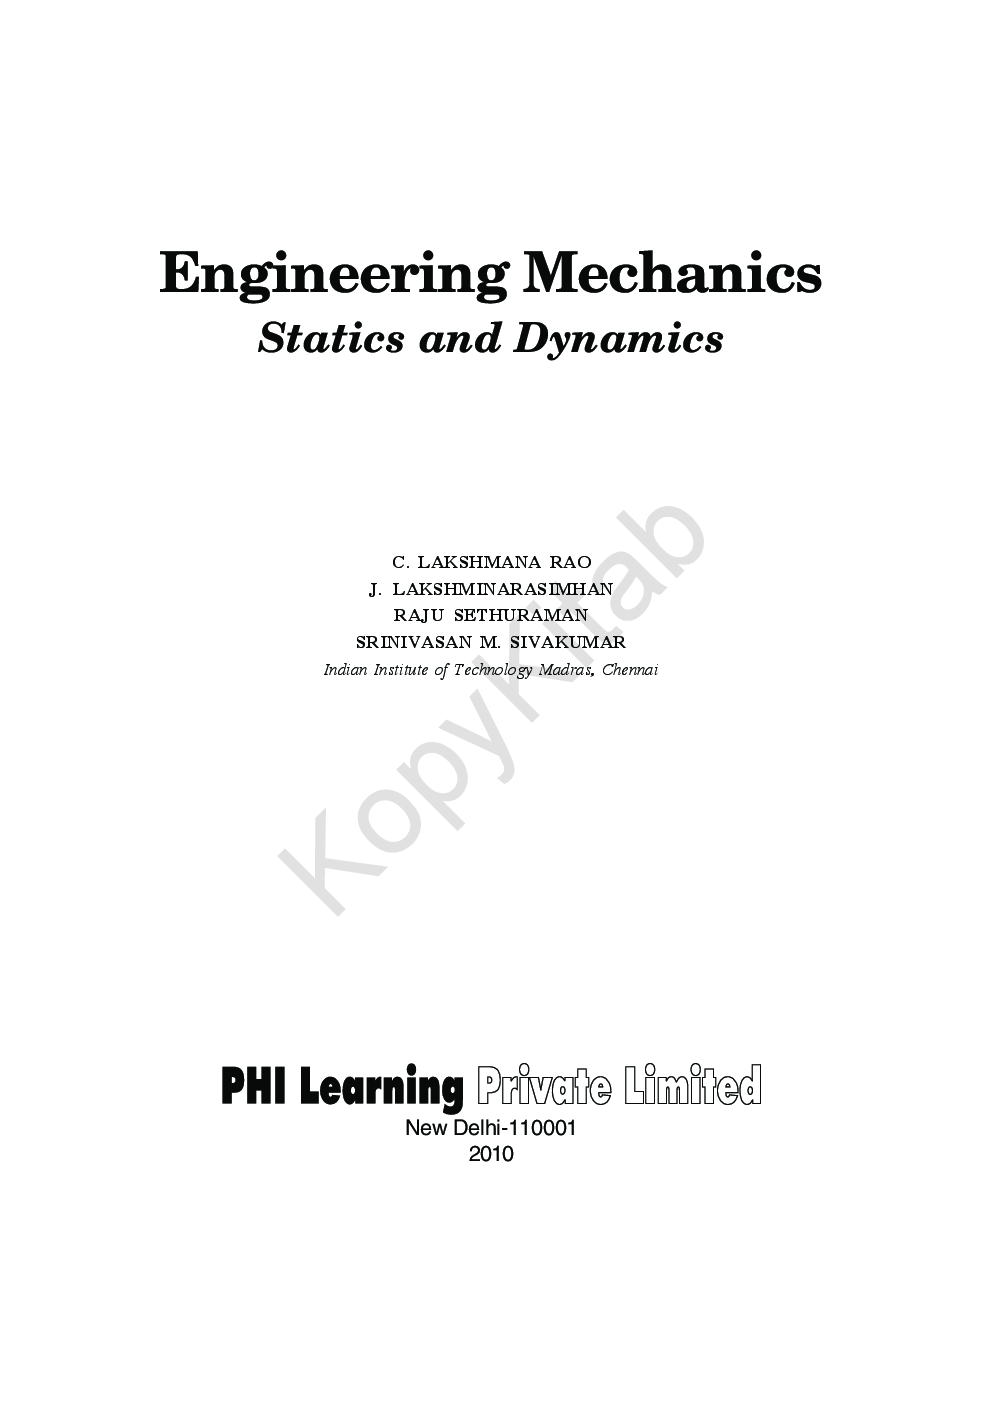 Engineering mechanics statics and dynamics by c lakshmana rao get this ebook snapshot description fandeluxe Image collections